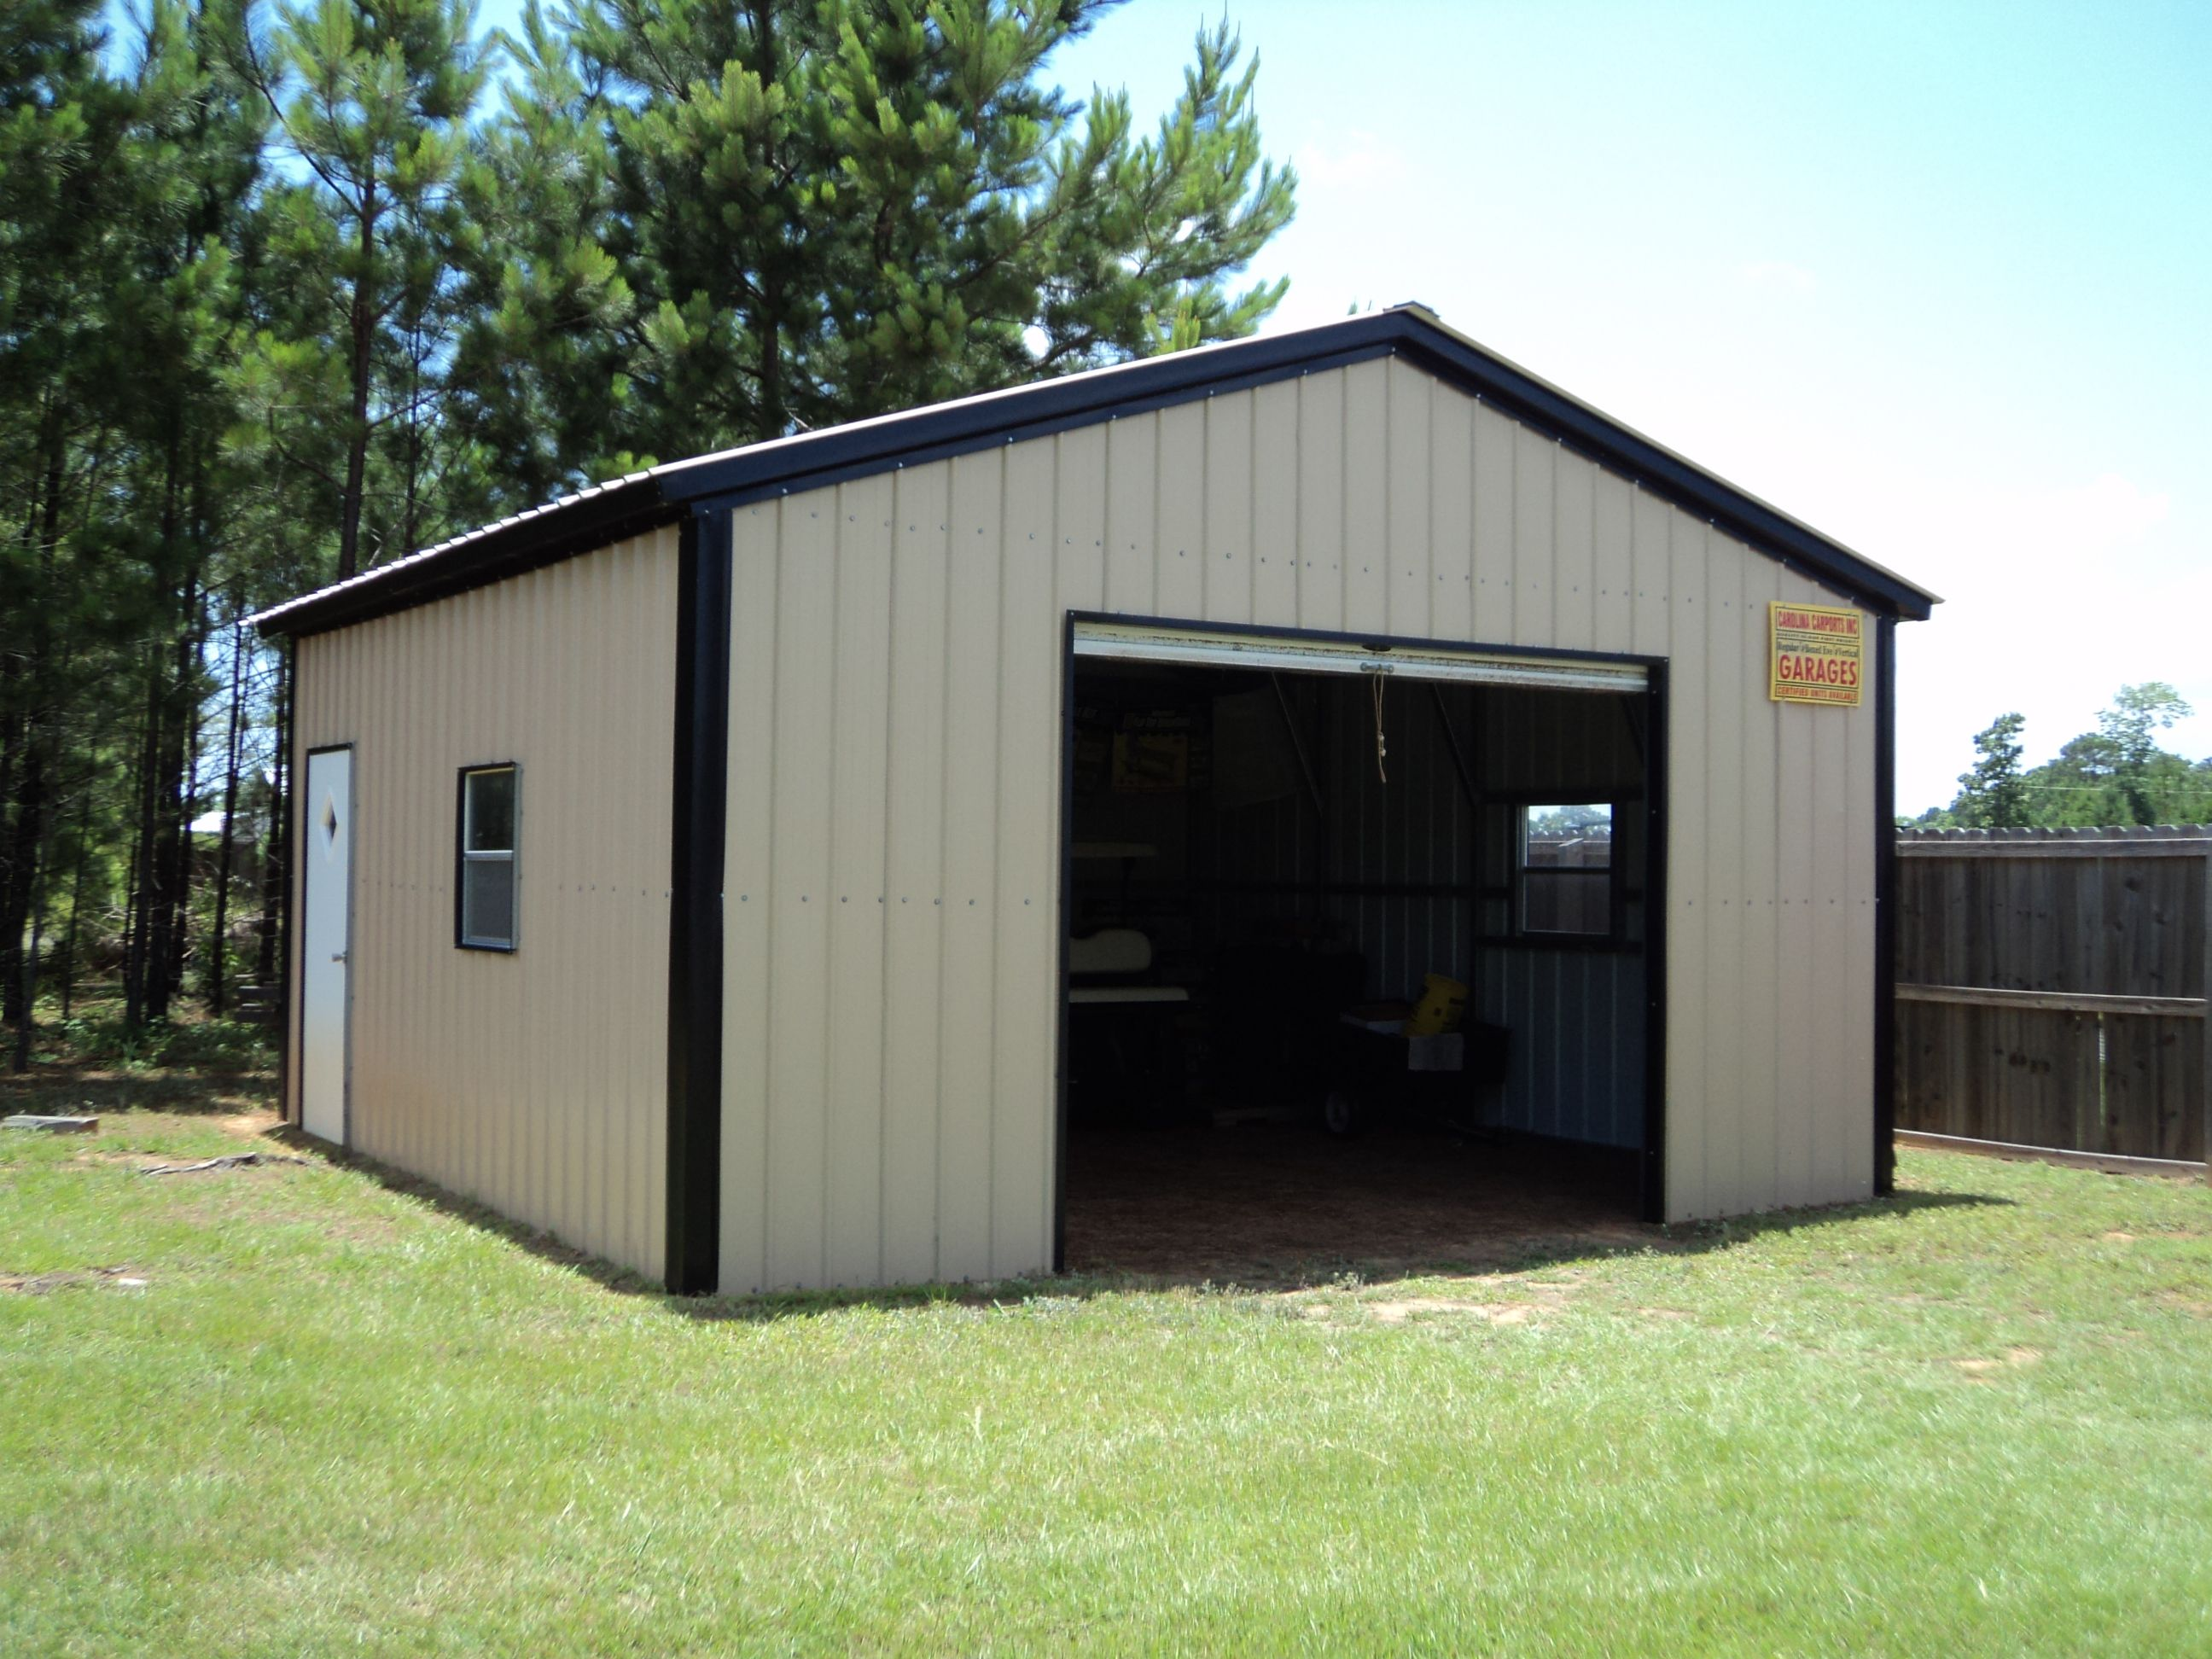 18 x 21 x 9 all vertical garage choice metal buildings for Carports and garages